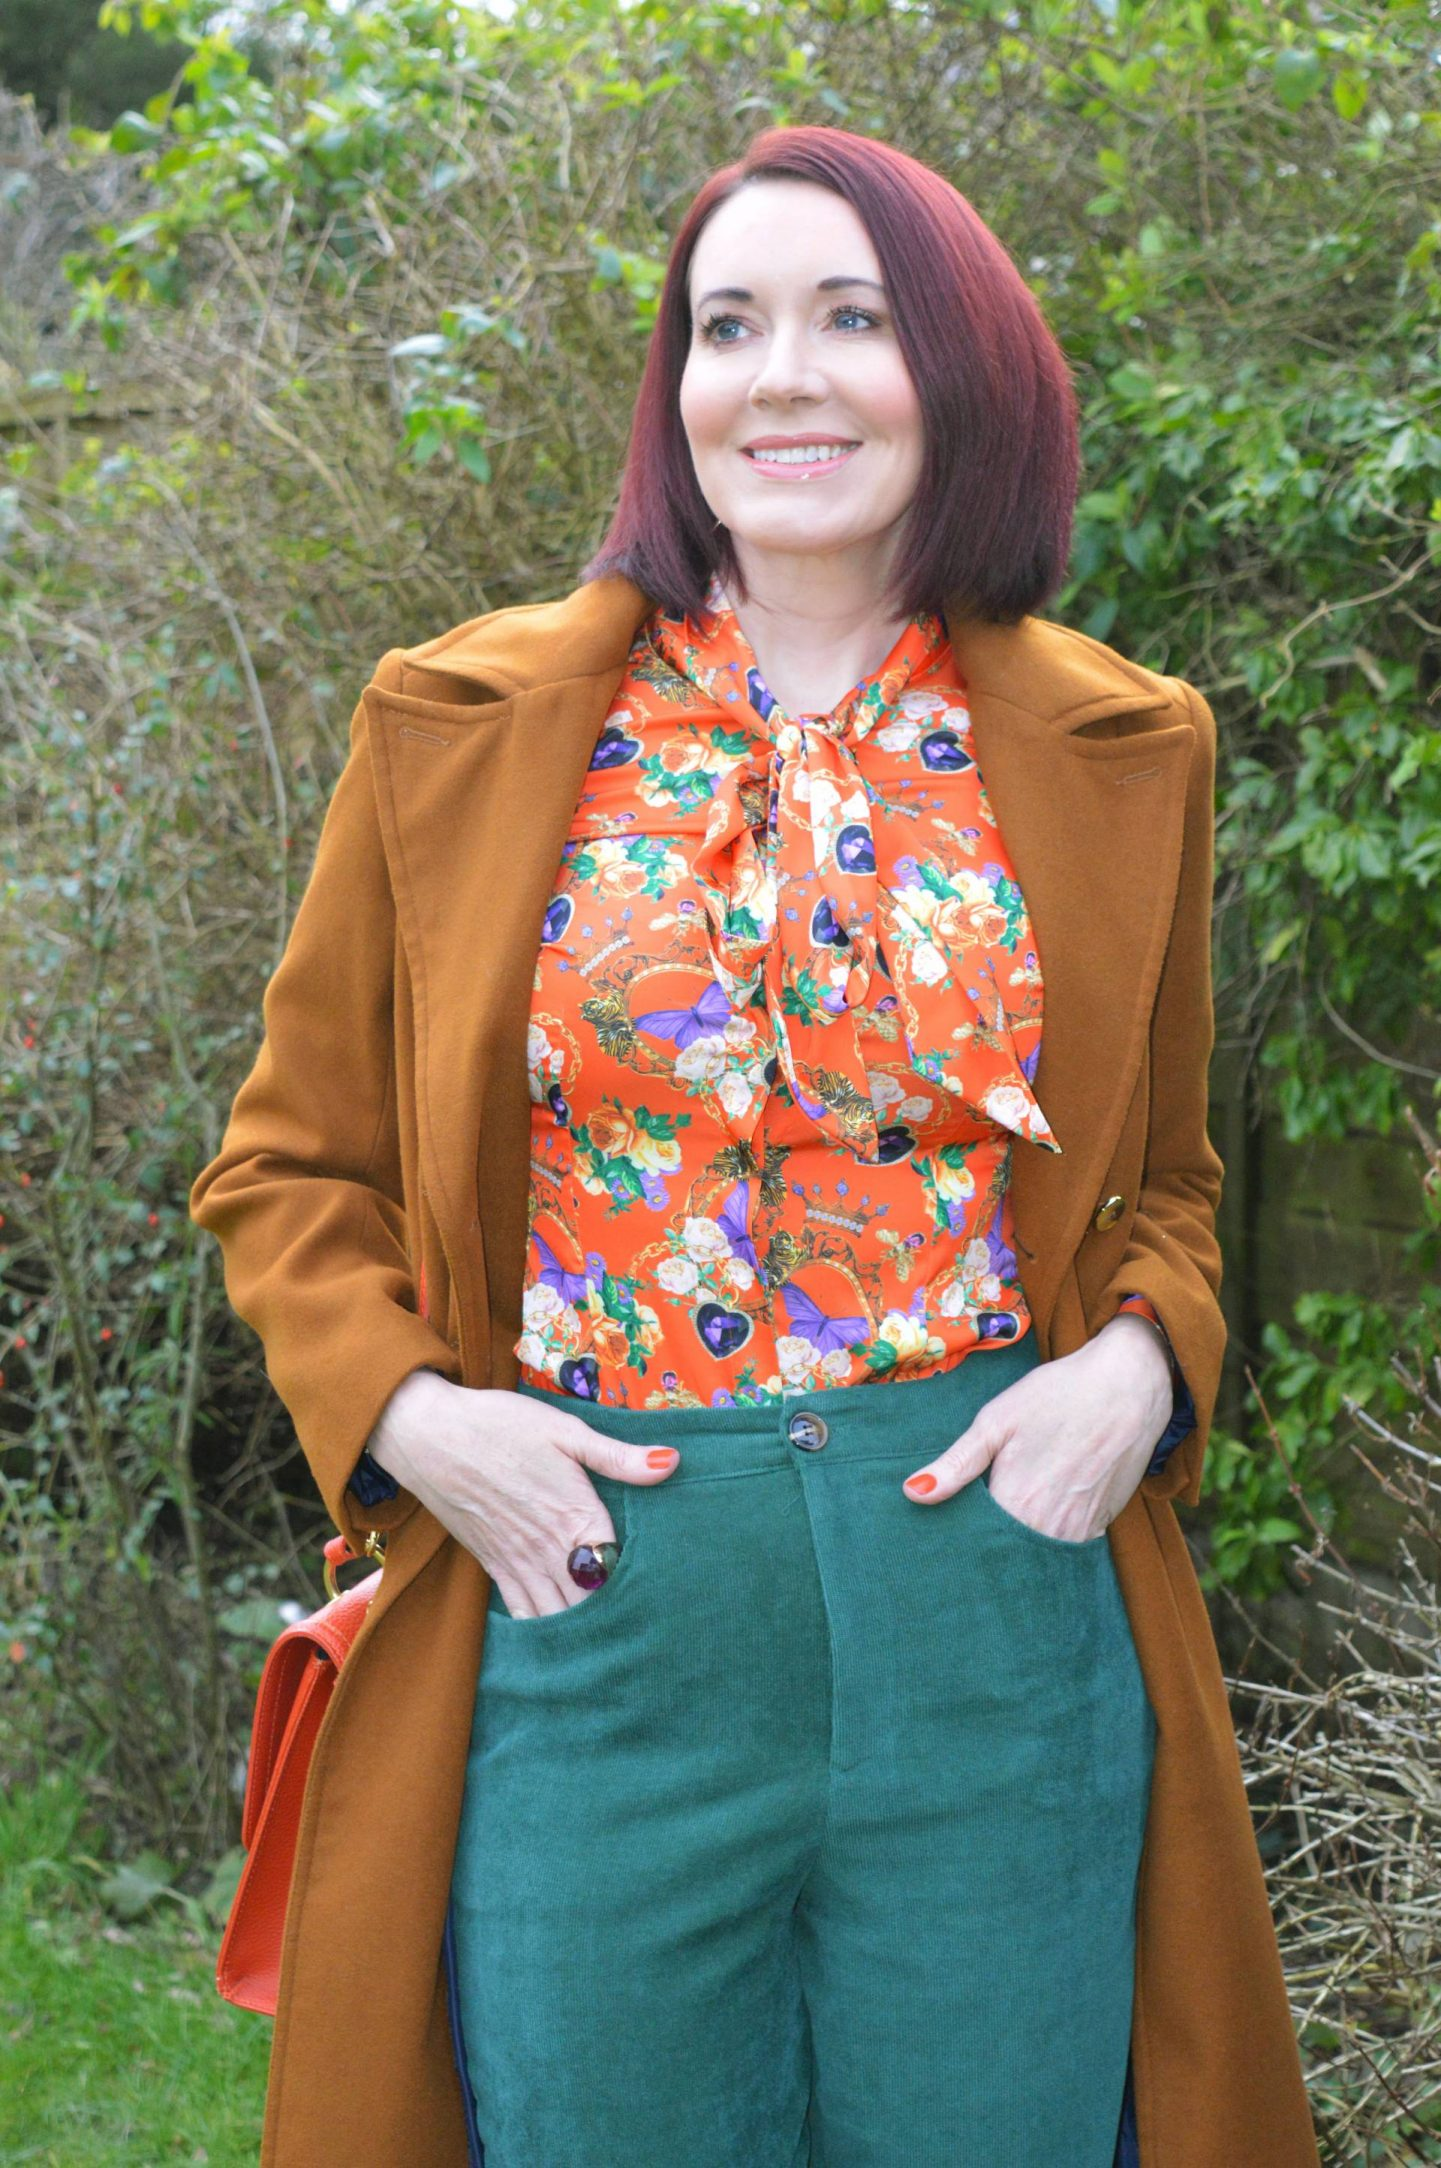 Hawes & Curtis Orange Pussy Bow Blouse and Green Cords, Oasis tan coat